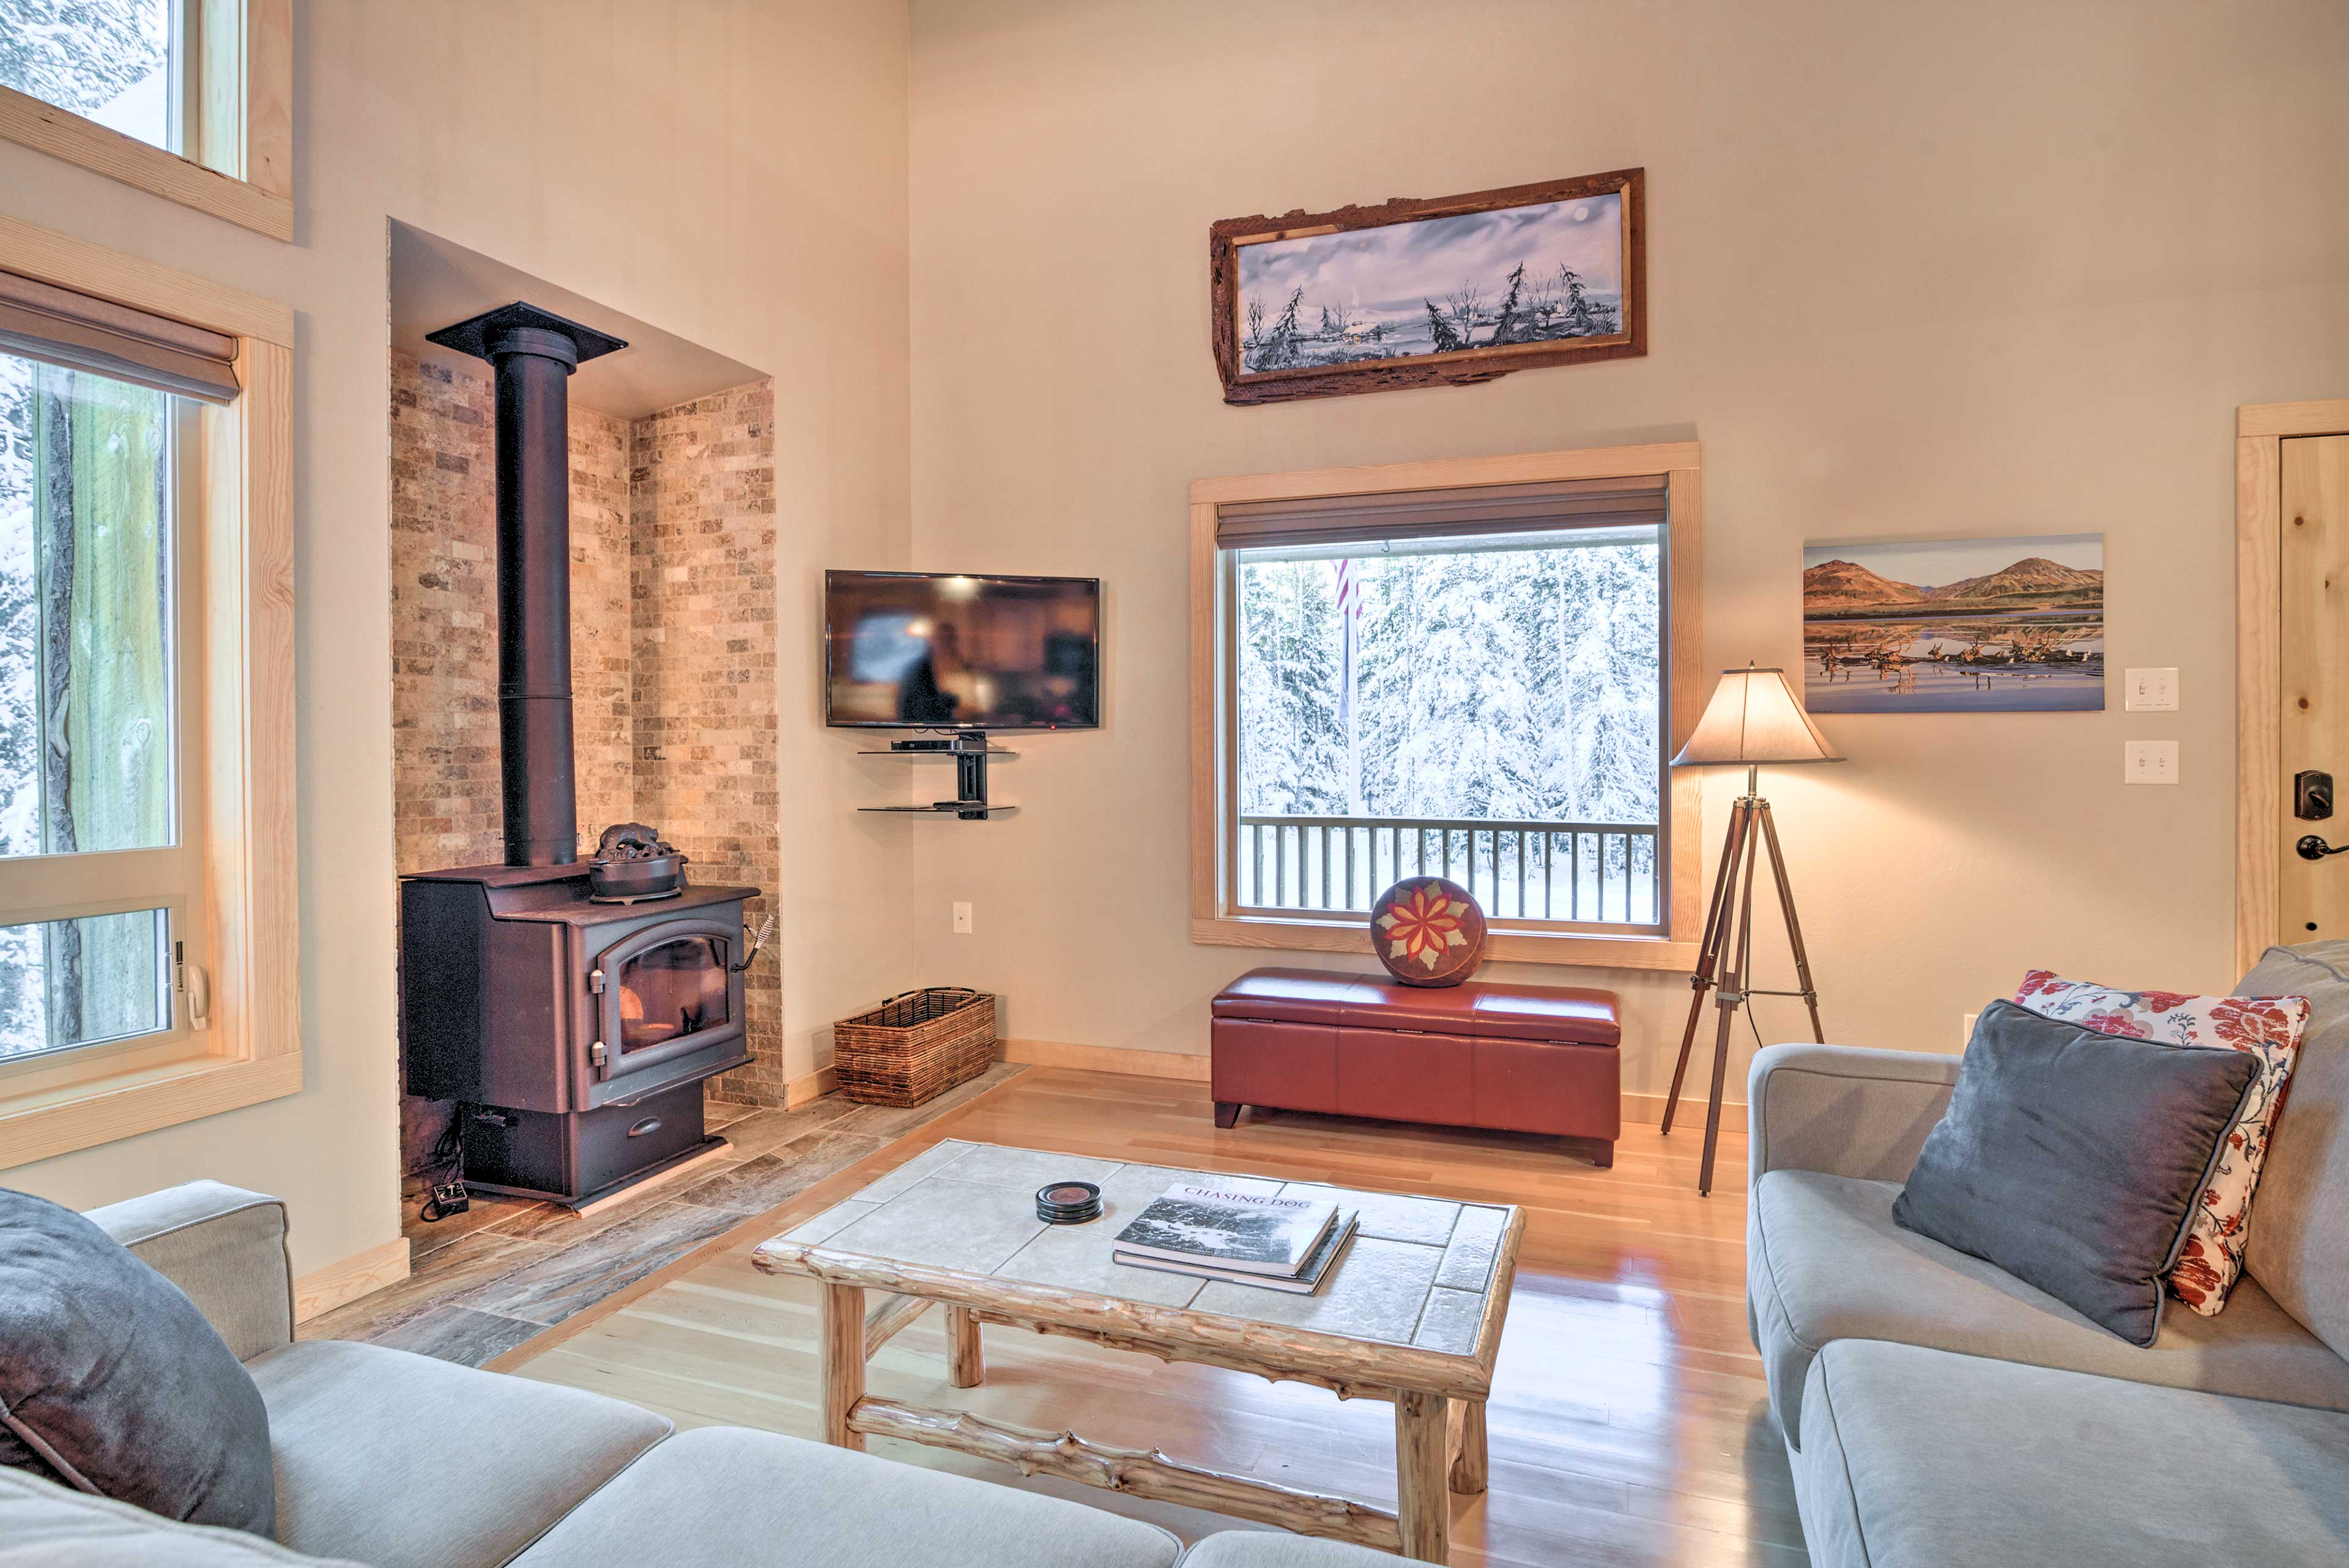 Gather in the living area to watch your favorite shows on the TV.